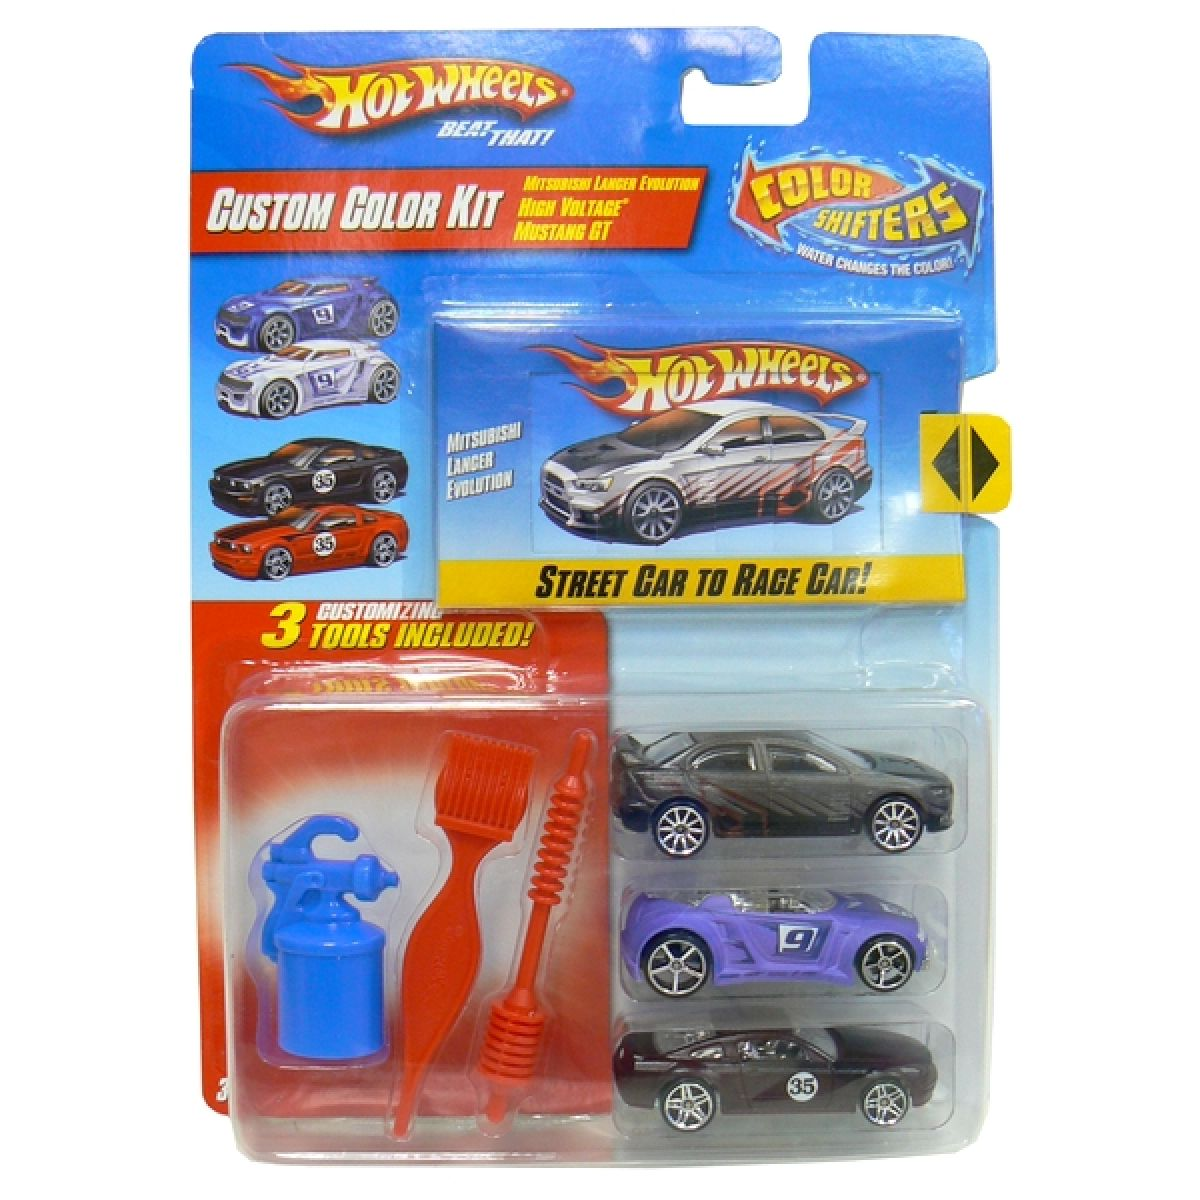 Hot Wheels R9602 Custom Color Kit - Street car to race car